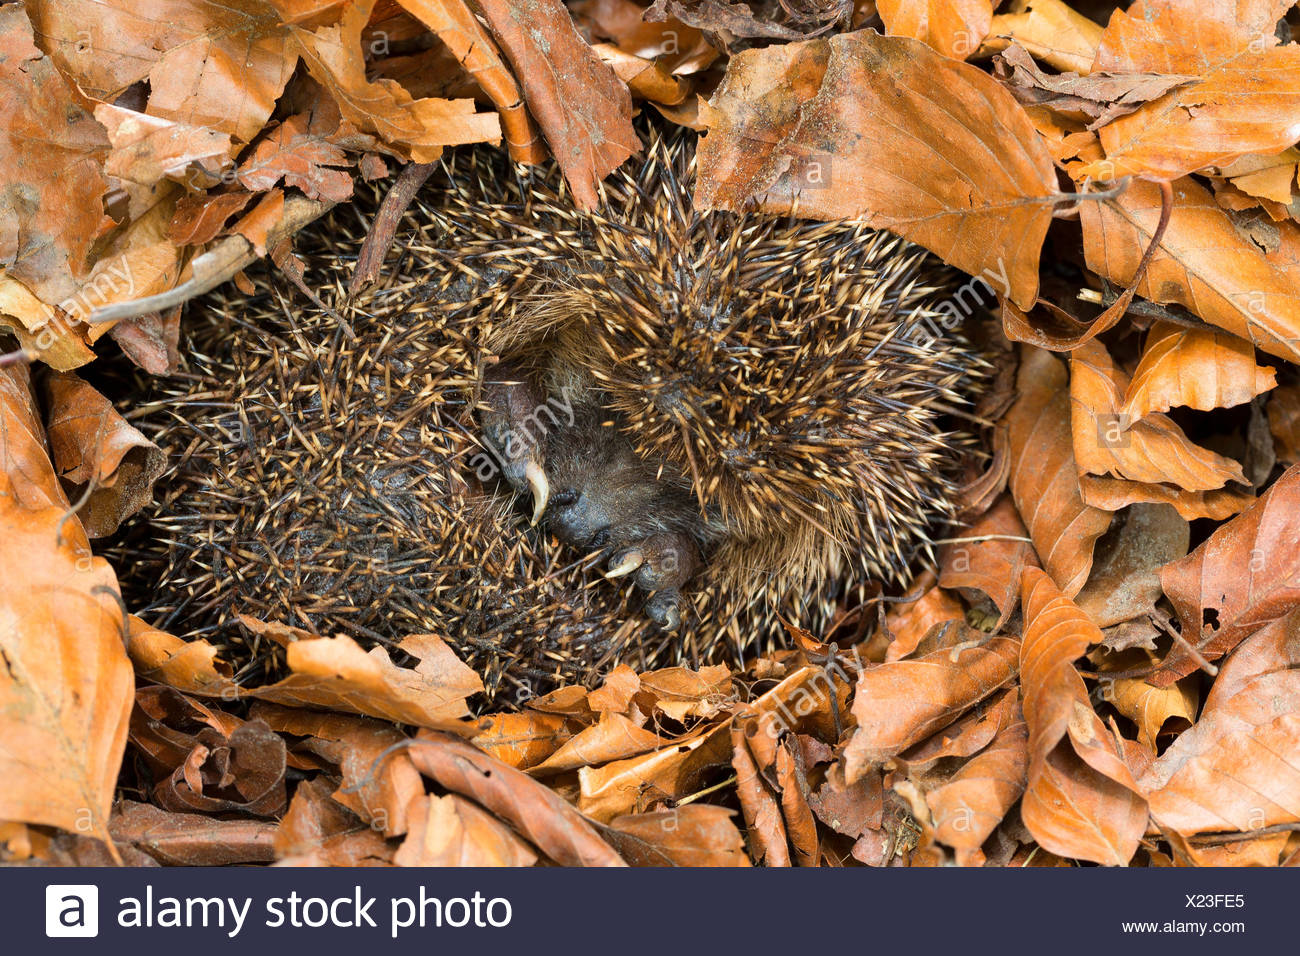 Western hedgehog, European hedgehog (Erinaceus europaeus), overwintering in leaf litter, Germany - Stock Image